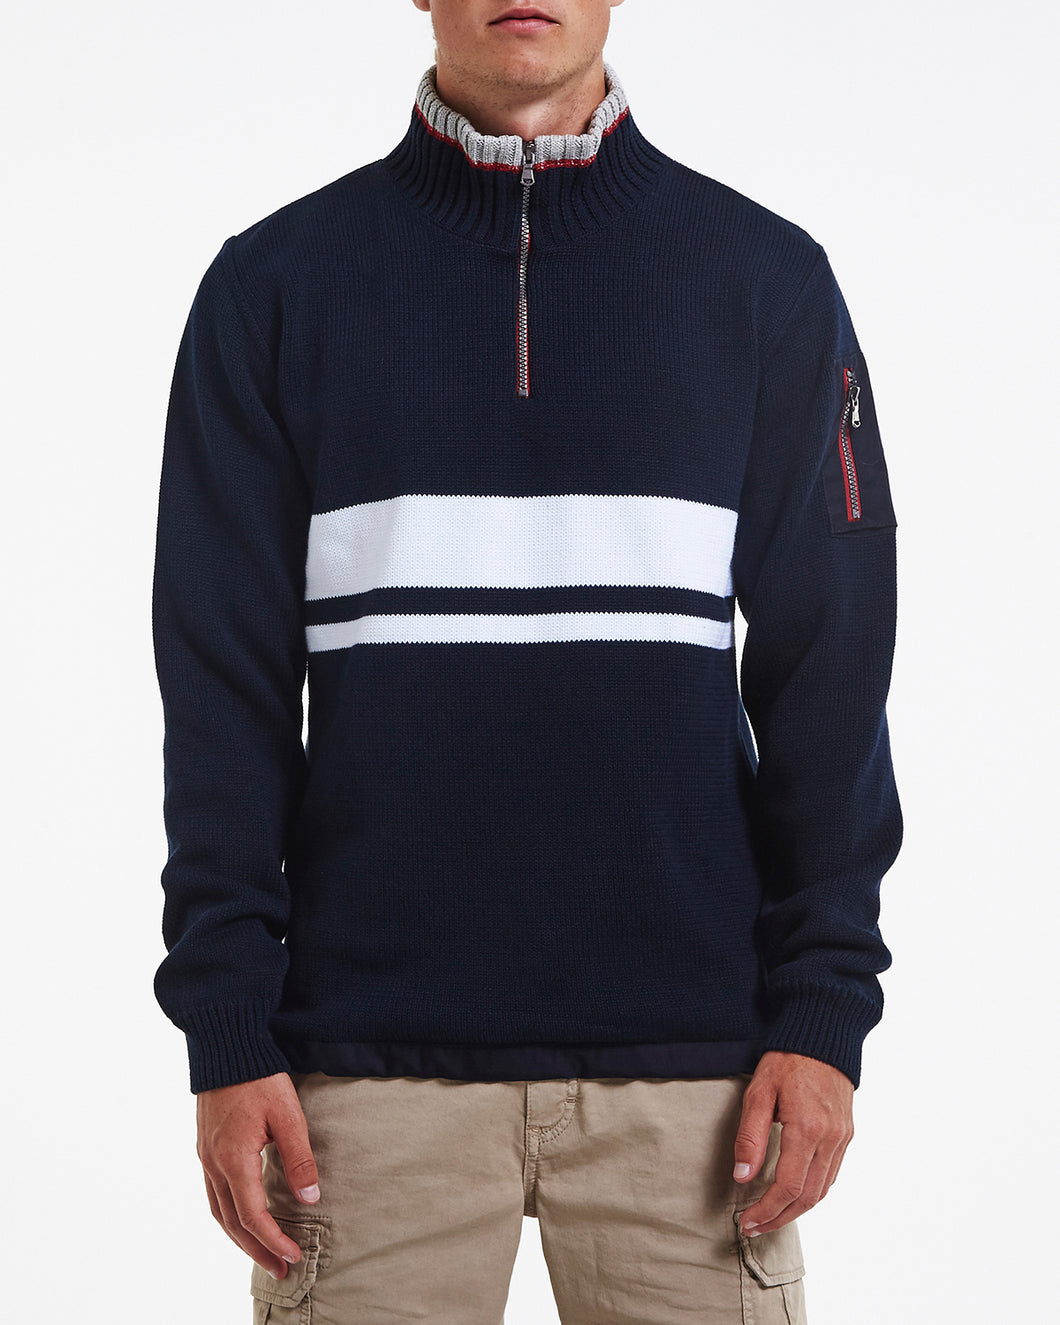 Holebrook Sweden Urban Windproof Jumper (NEW)